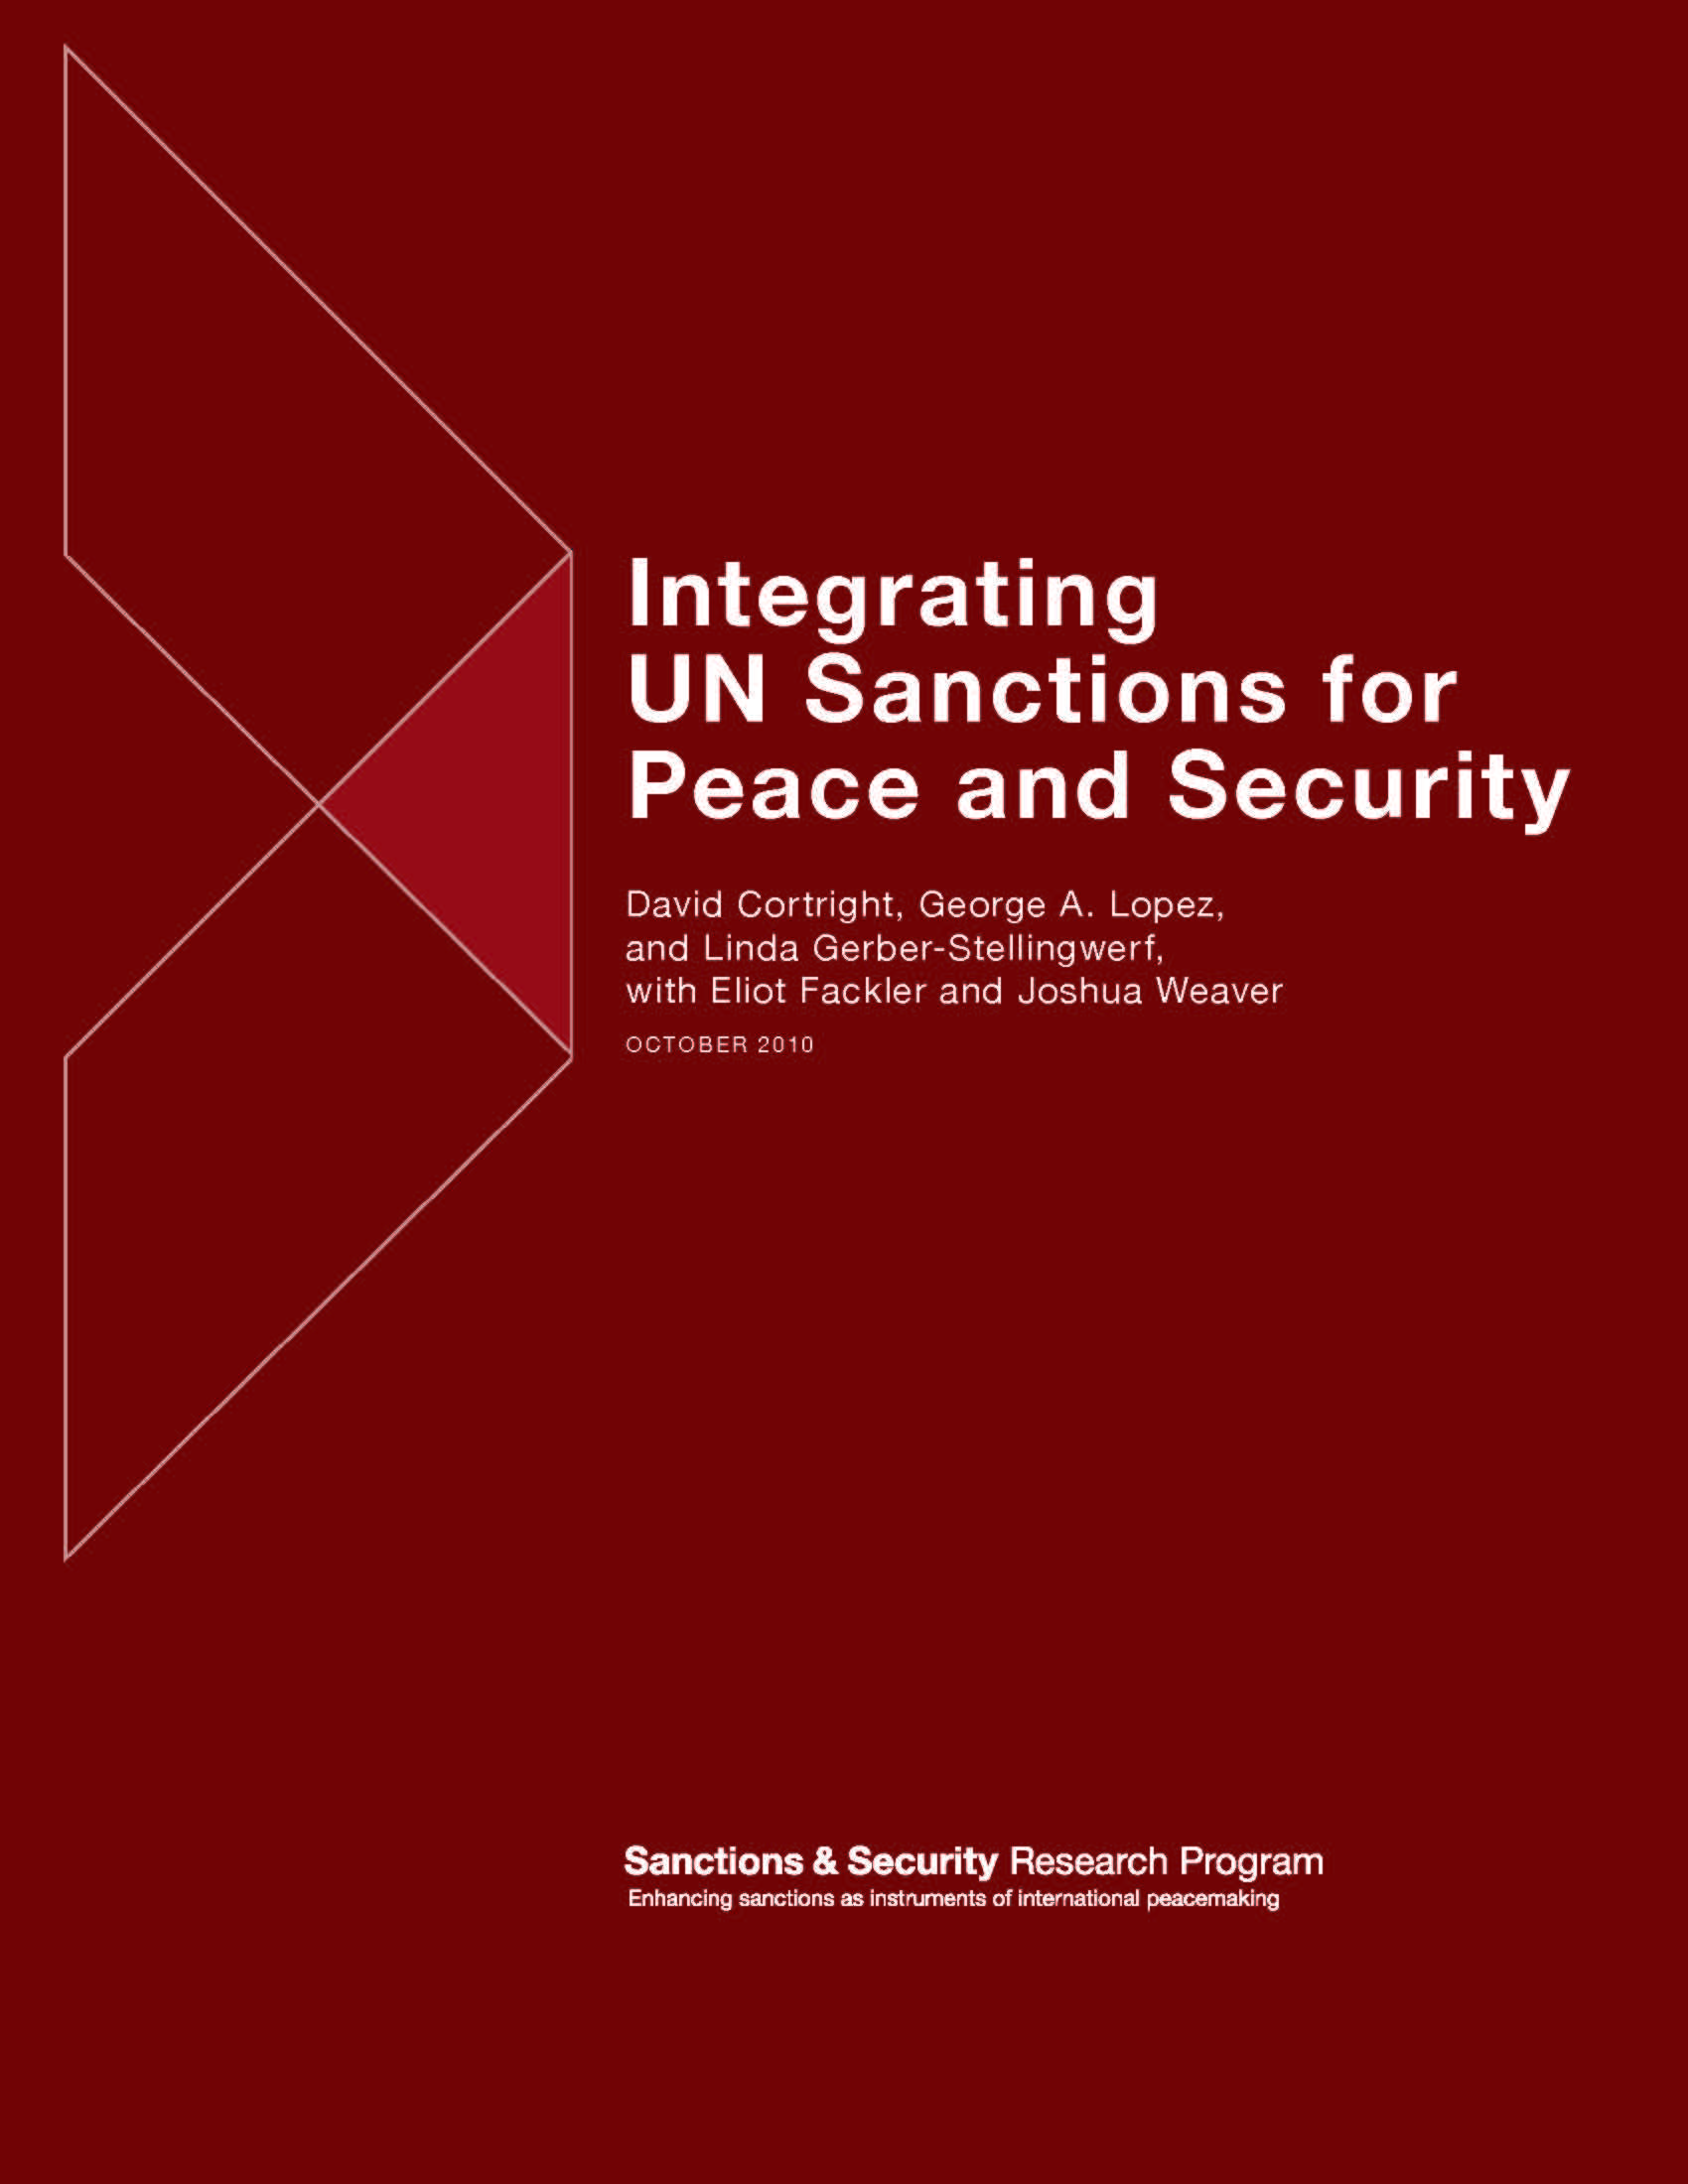 Integrating UN Sanctions for Peace and Security